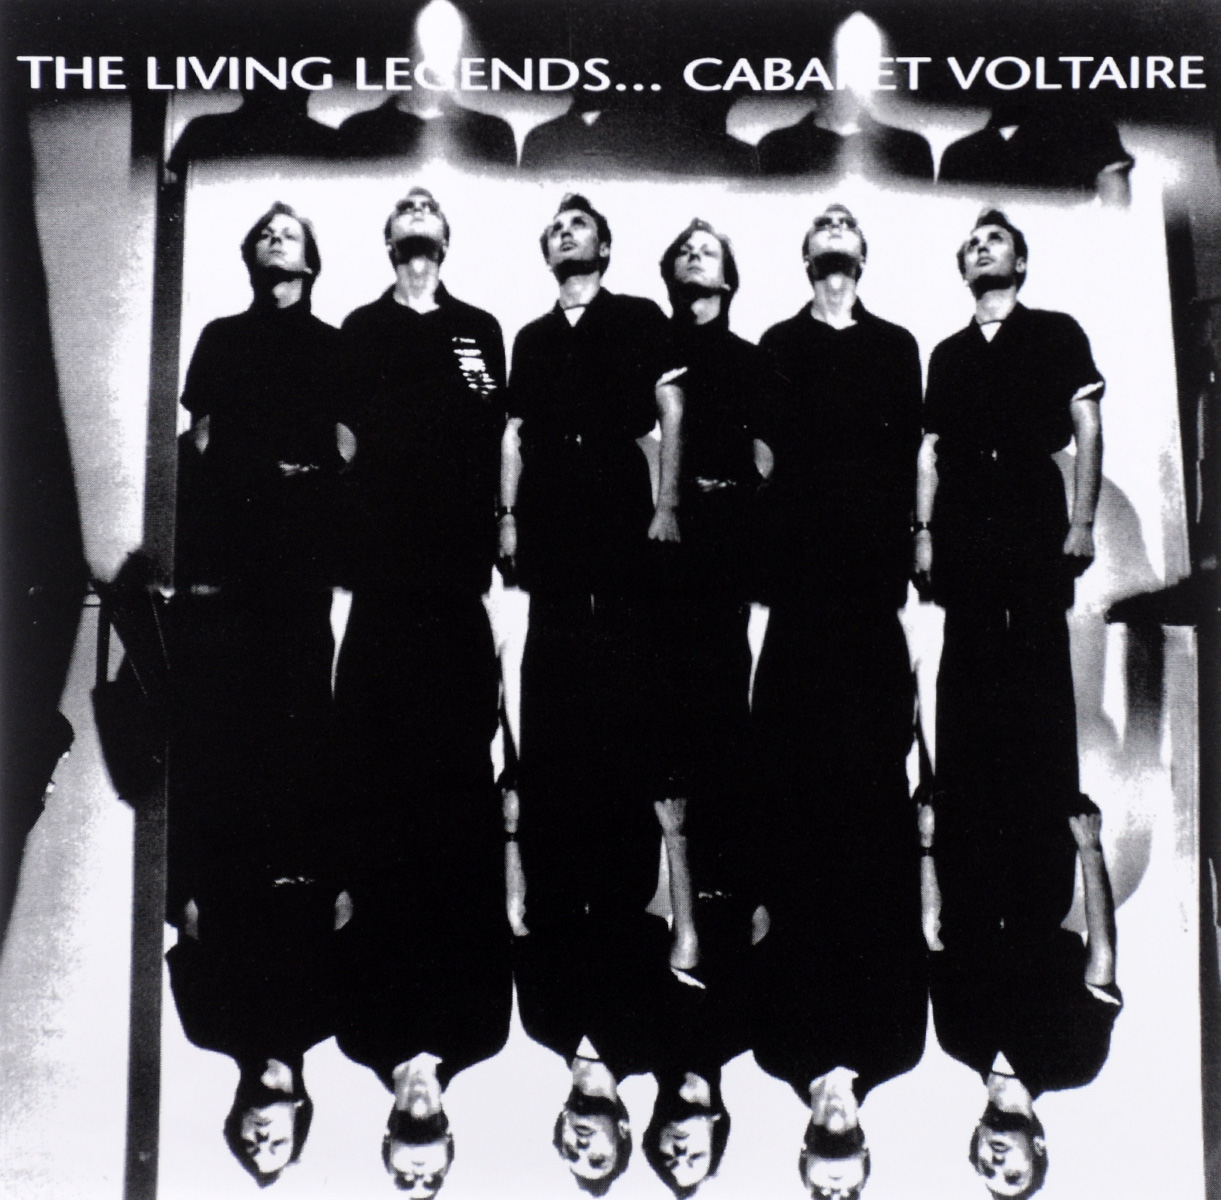 Cabaret Voltaire Cabaret Voltaire The Living Legends